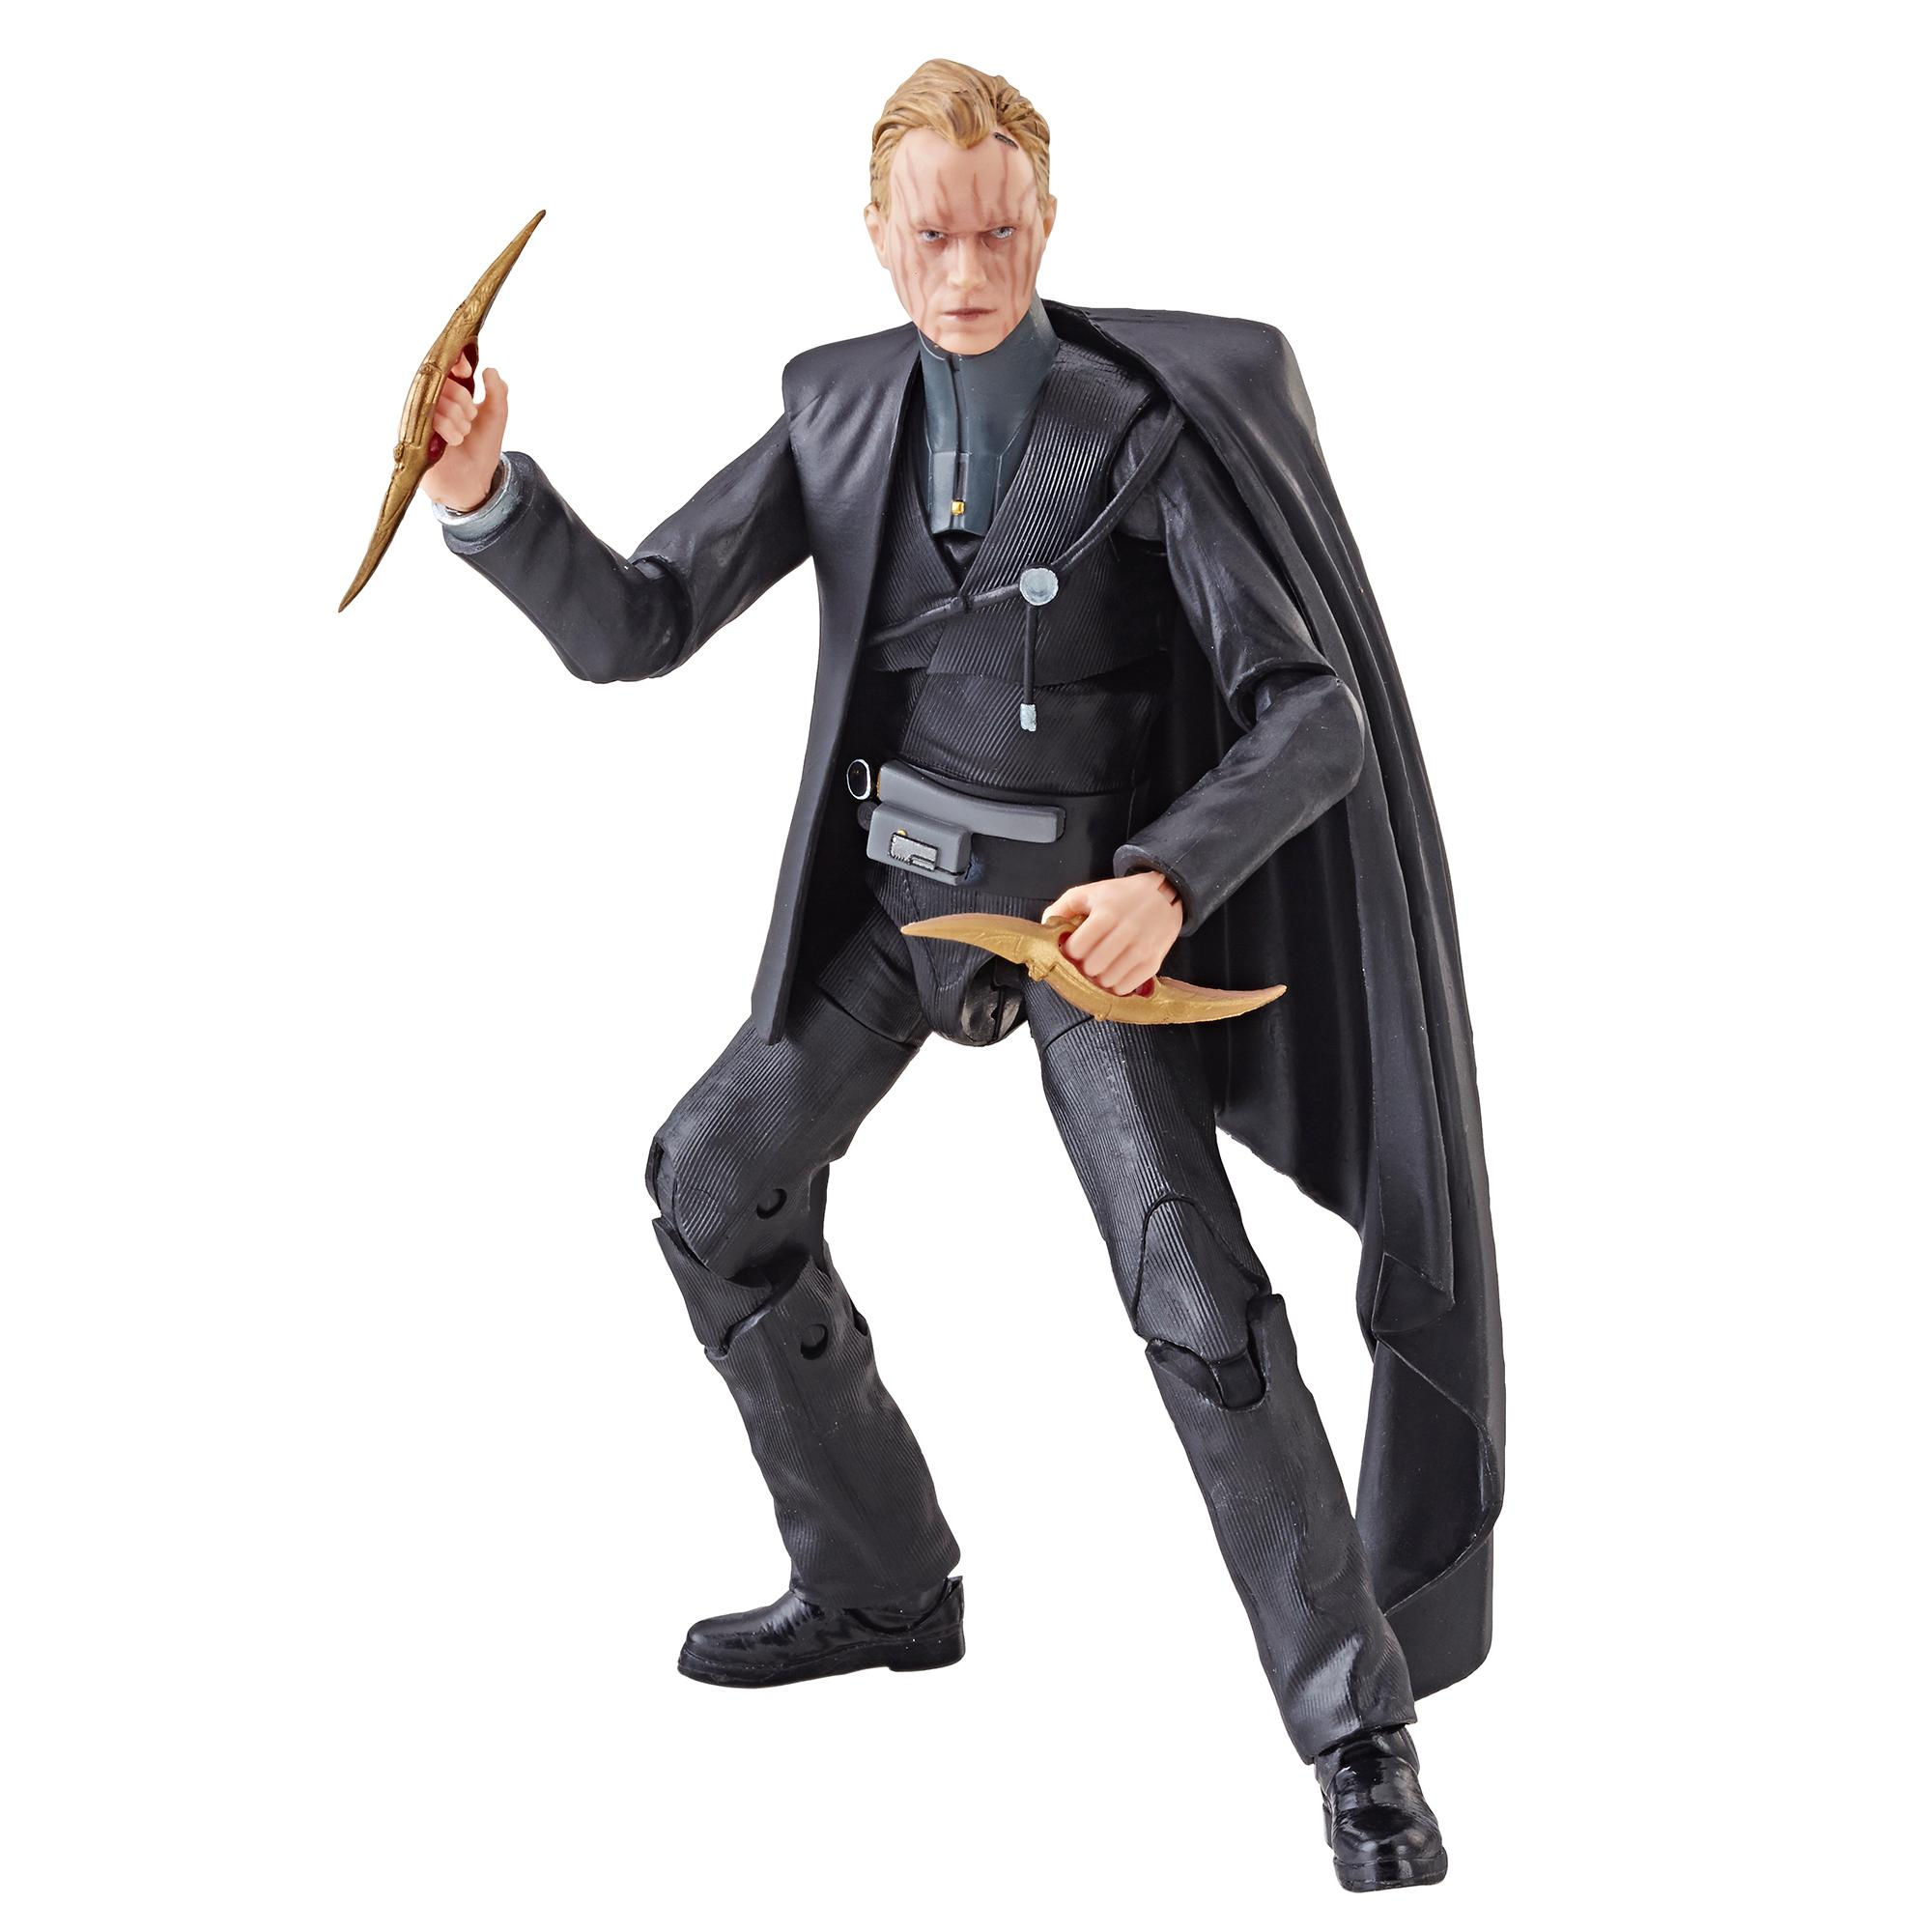 Star Wars The Black Series 6-inch Dryden Vos Figure